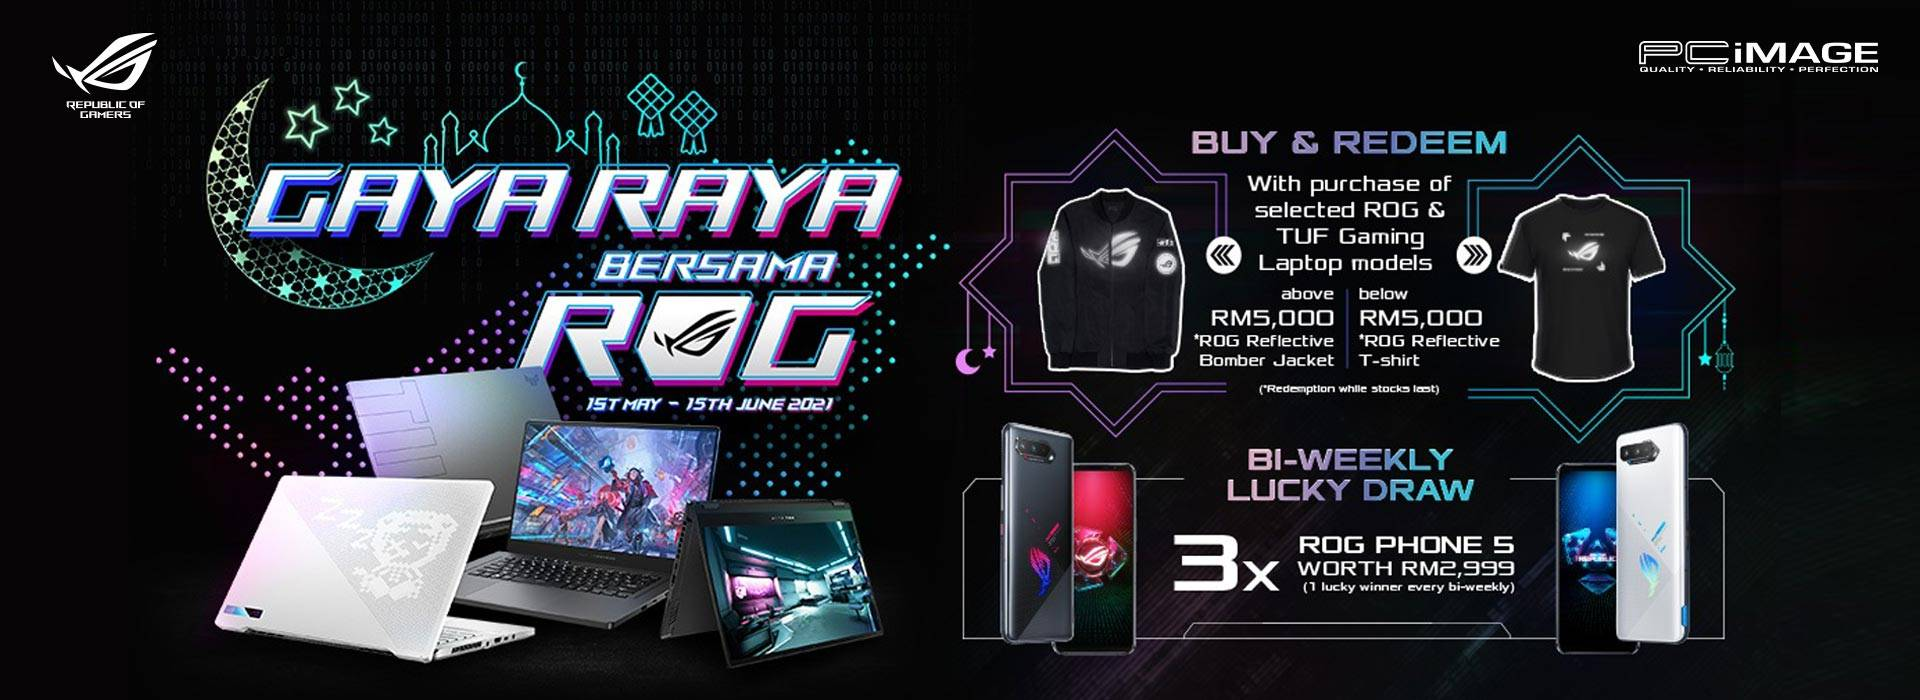 ROG AND TUF GAMING GIFT REDEMPTION 1 May – 15 June 2021